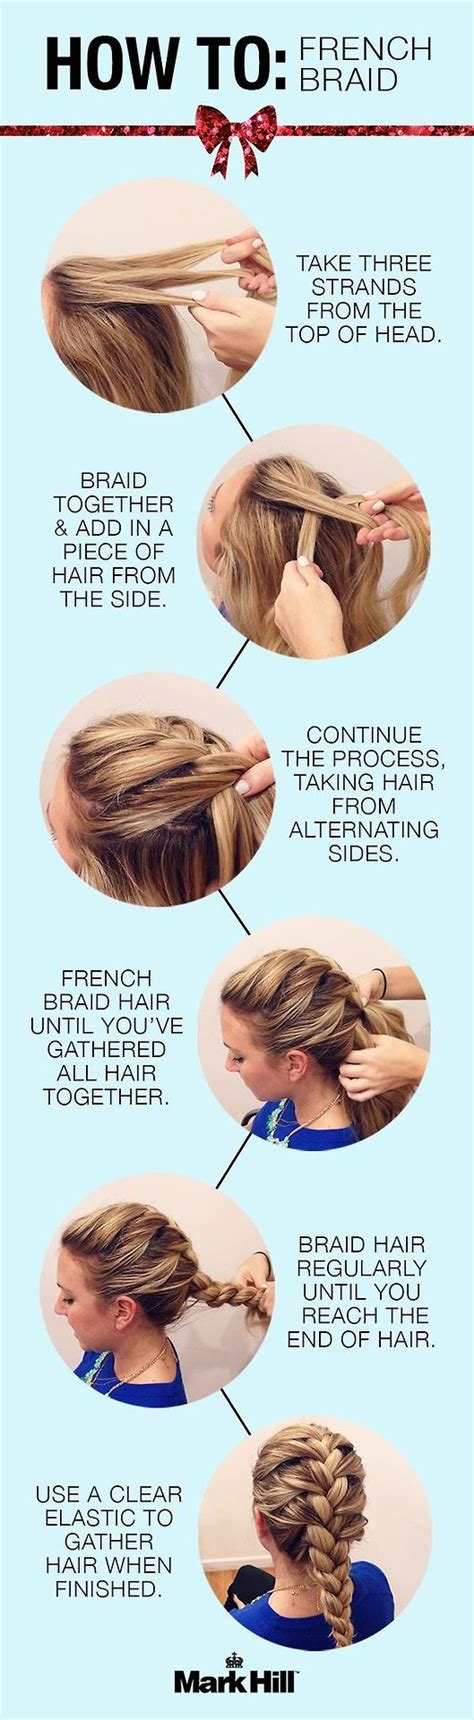 how to i french plait my own side hair how to do a best 25 learn to french braid ideas on pinterest how to